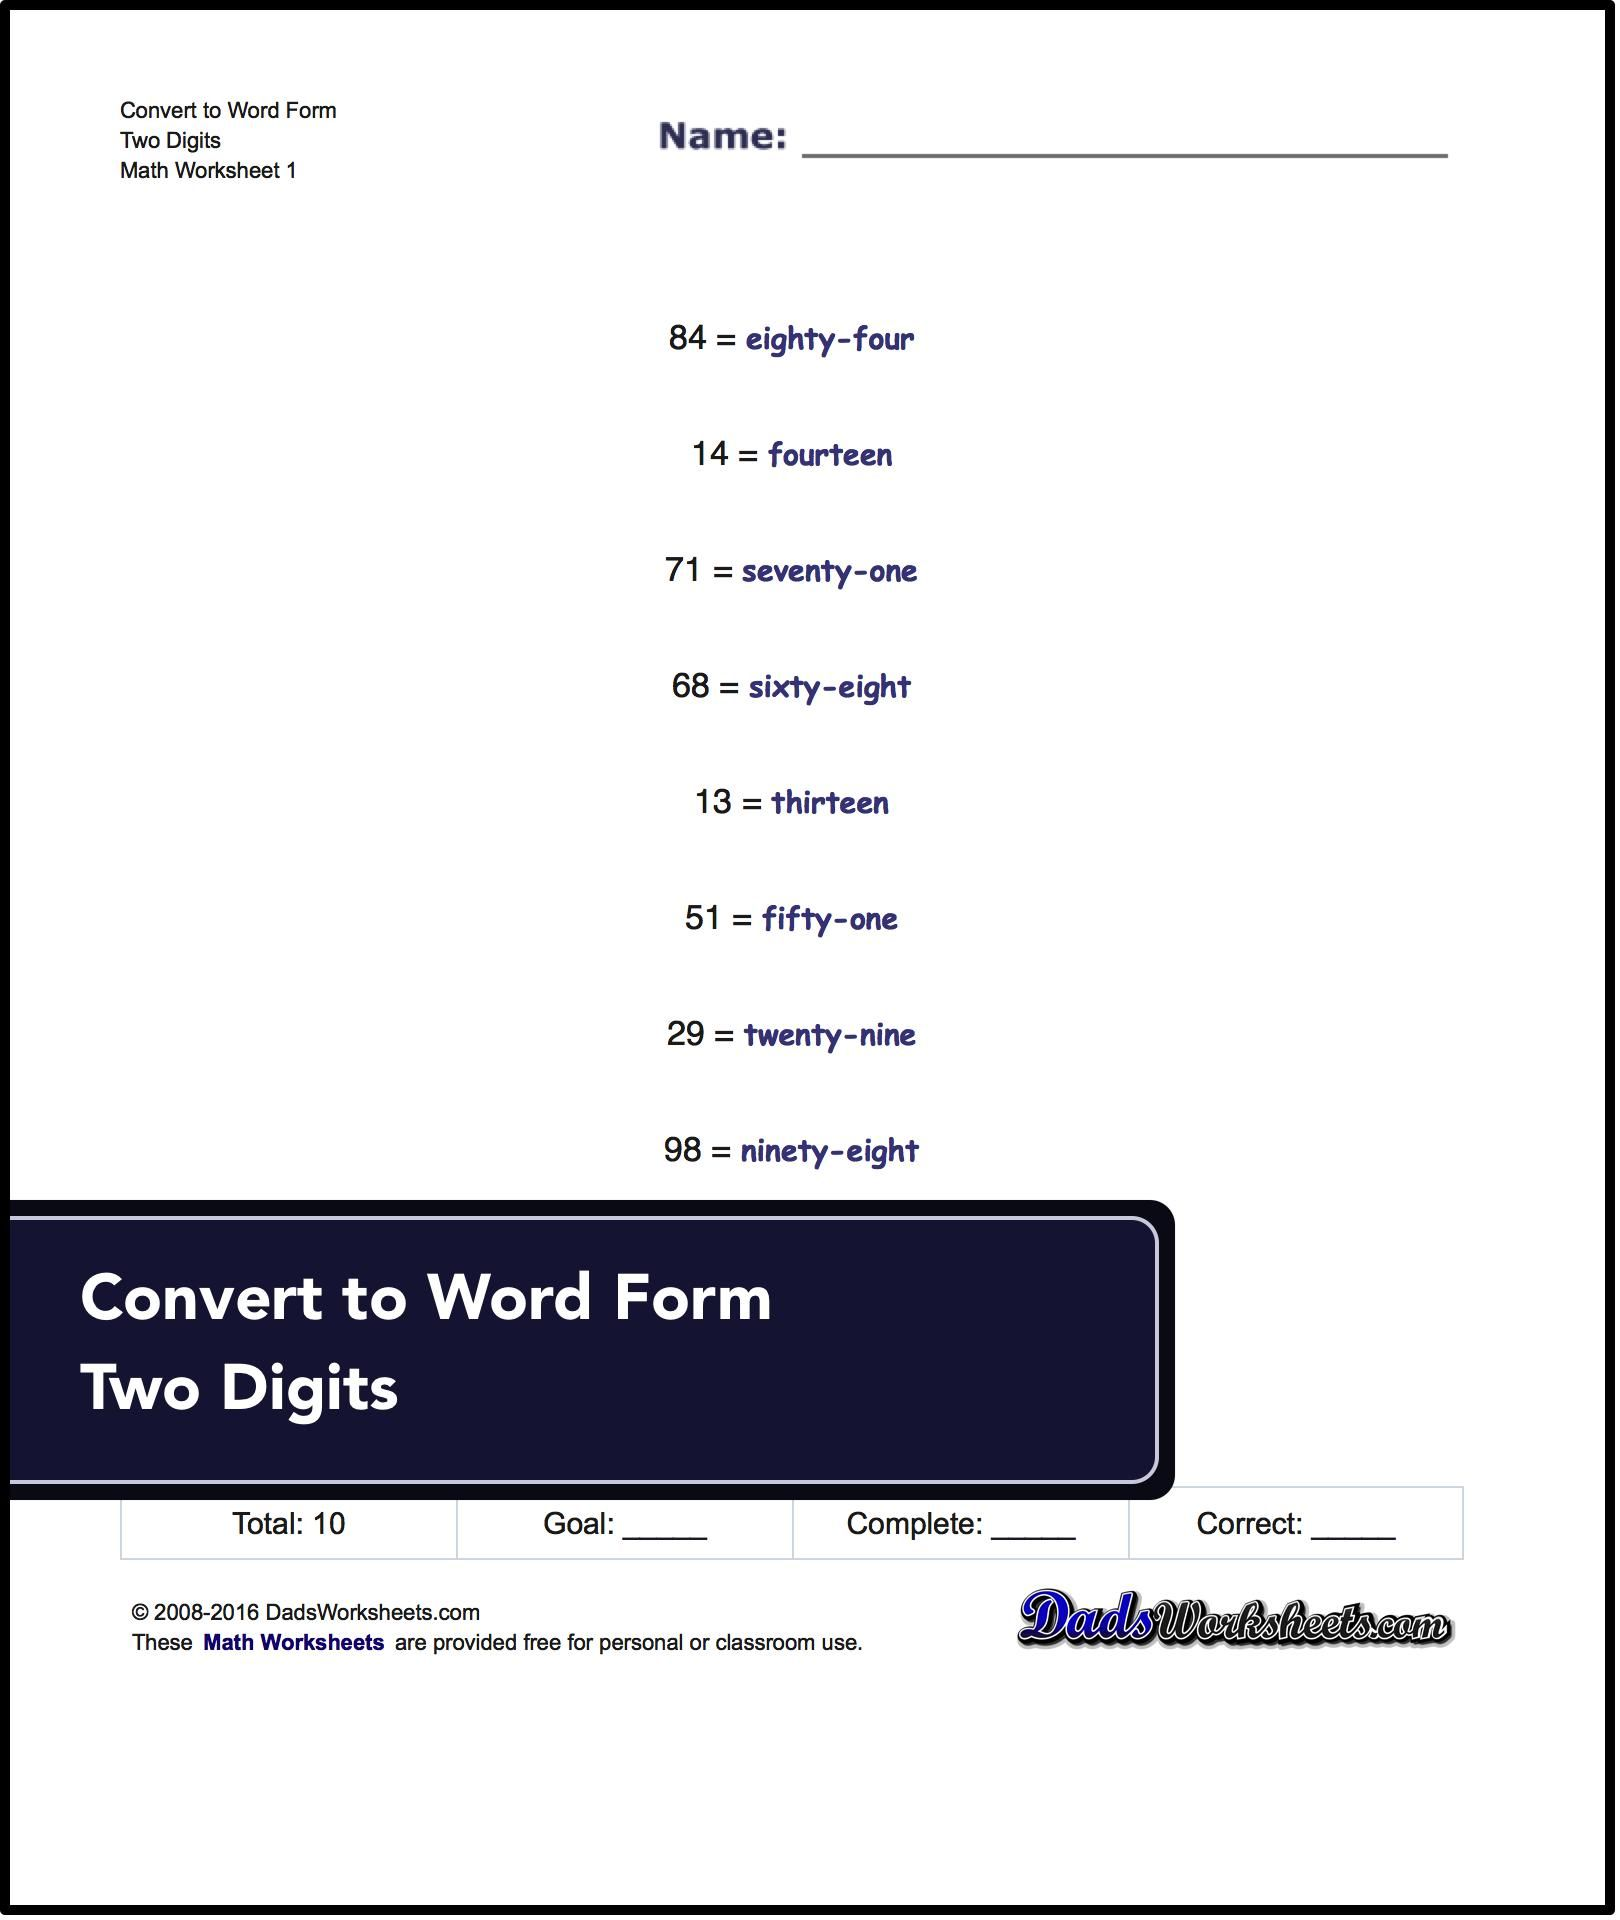 Practice worksheets for converting numbers from standard numeric practice worksheets for converting numbers from standard numeric notation into written word form notation falaconquin